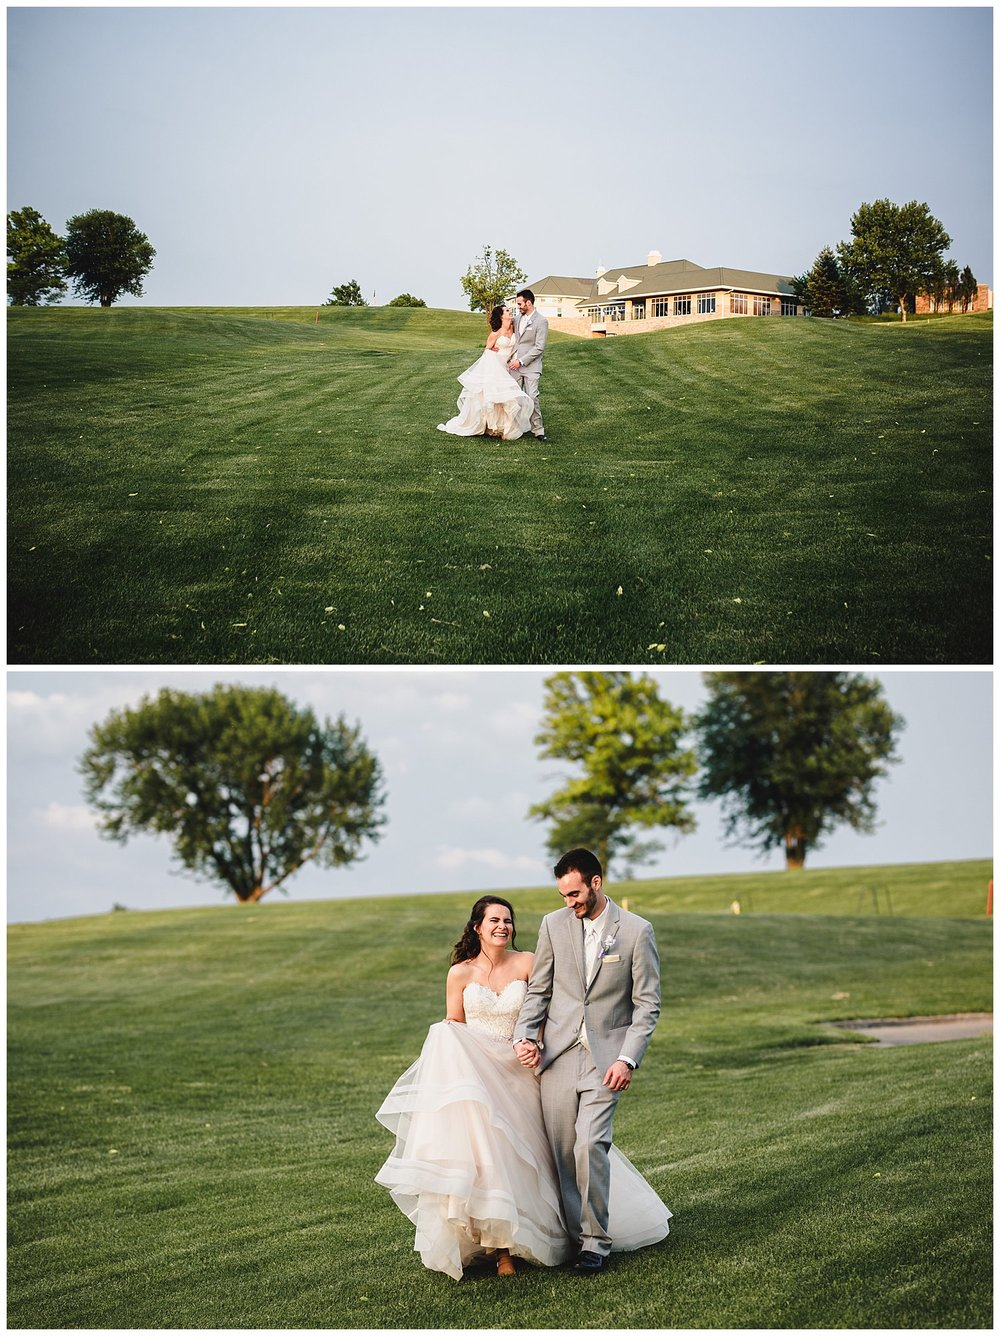 Tiffany_Greens_Golf_Club_Kansas_City_Wedding_Nikki_David_Spring_Wedding_Kelsey_Diane_Photography_0091.jpg